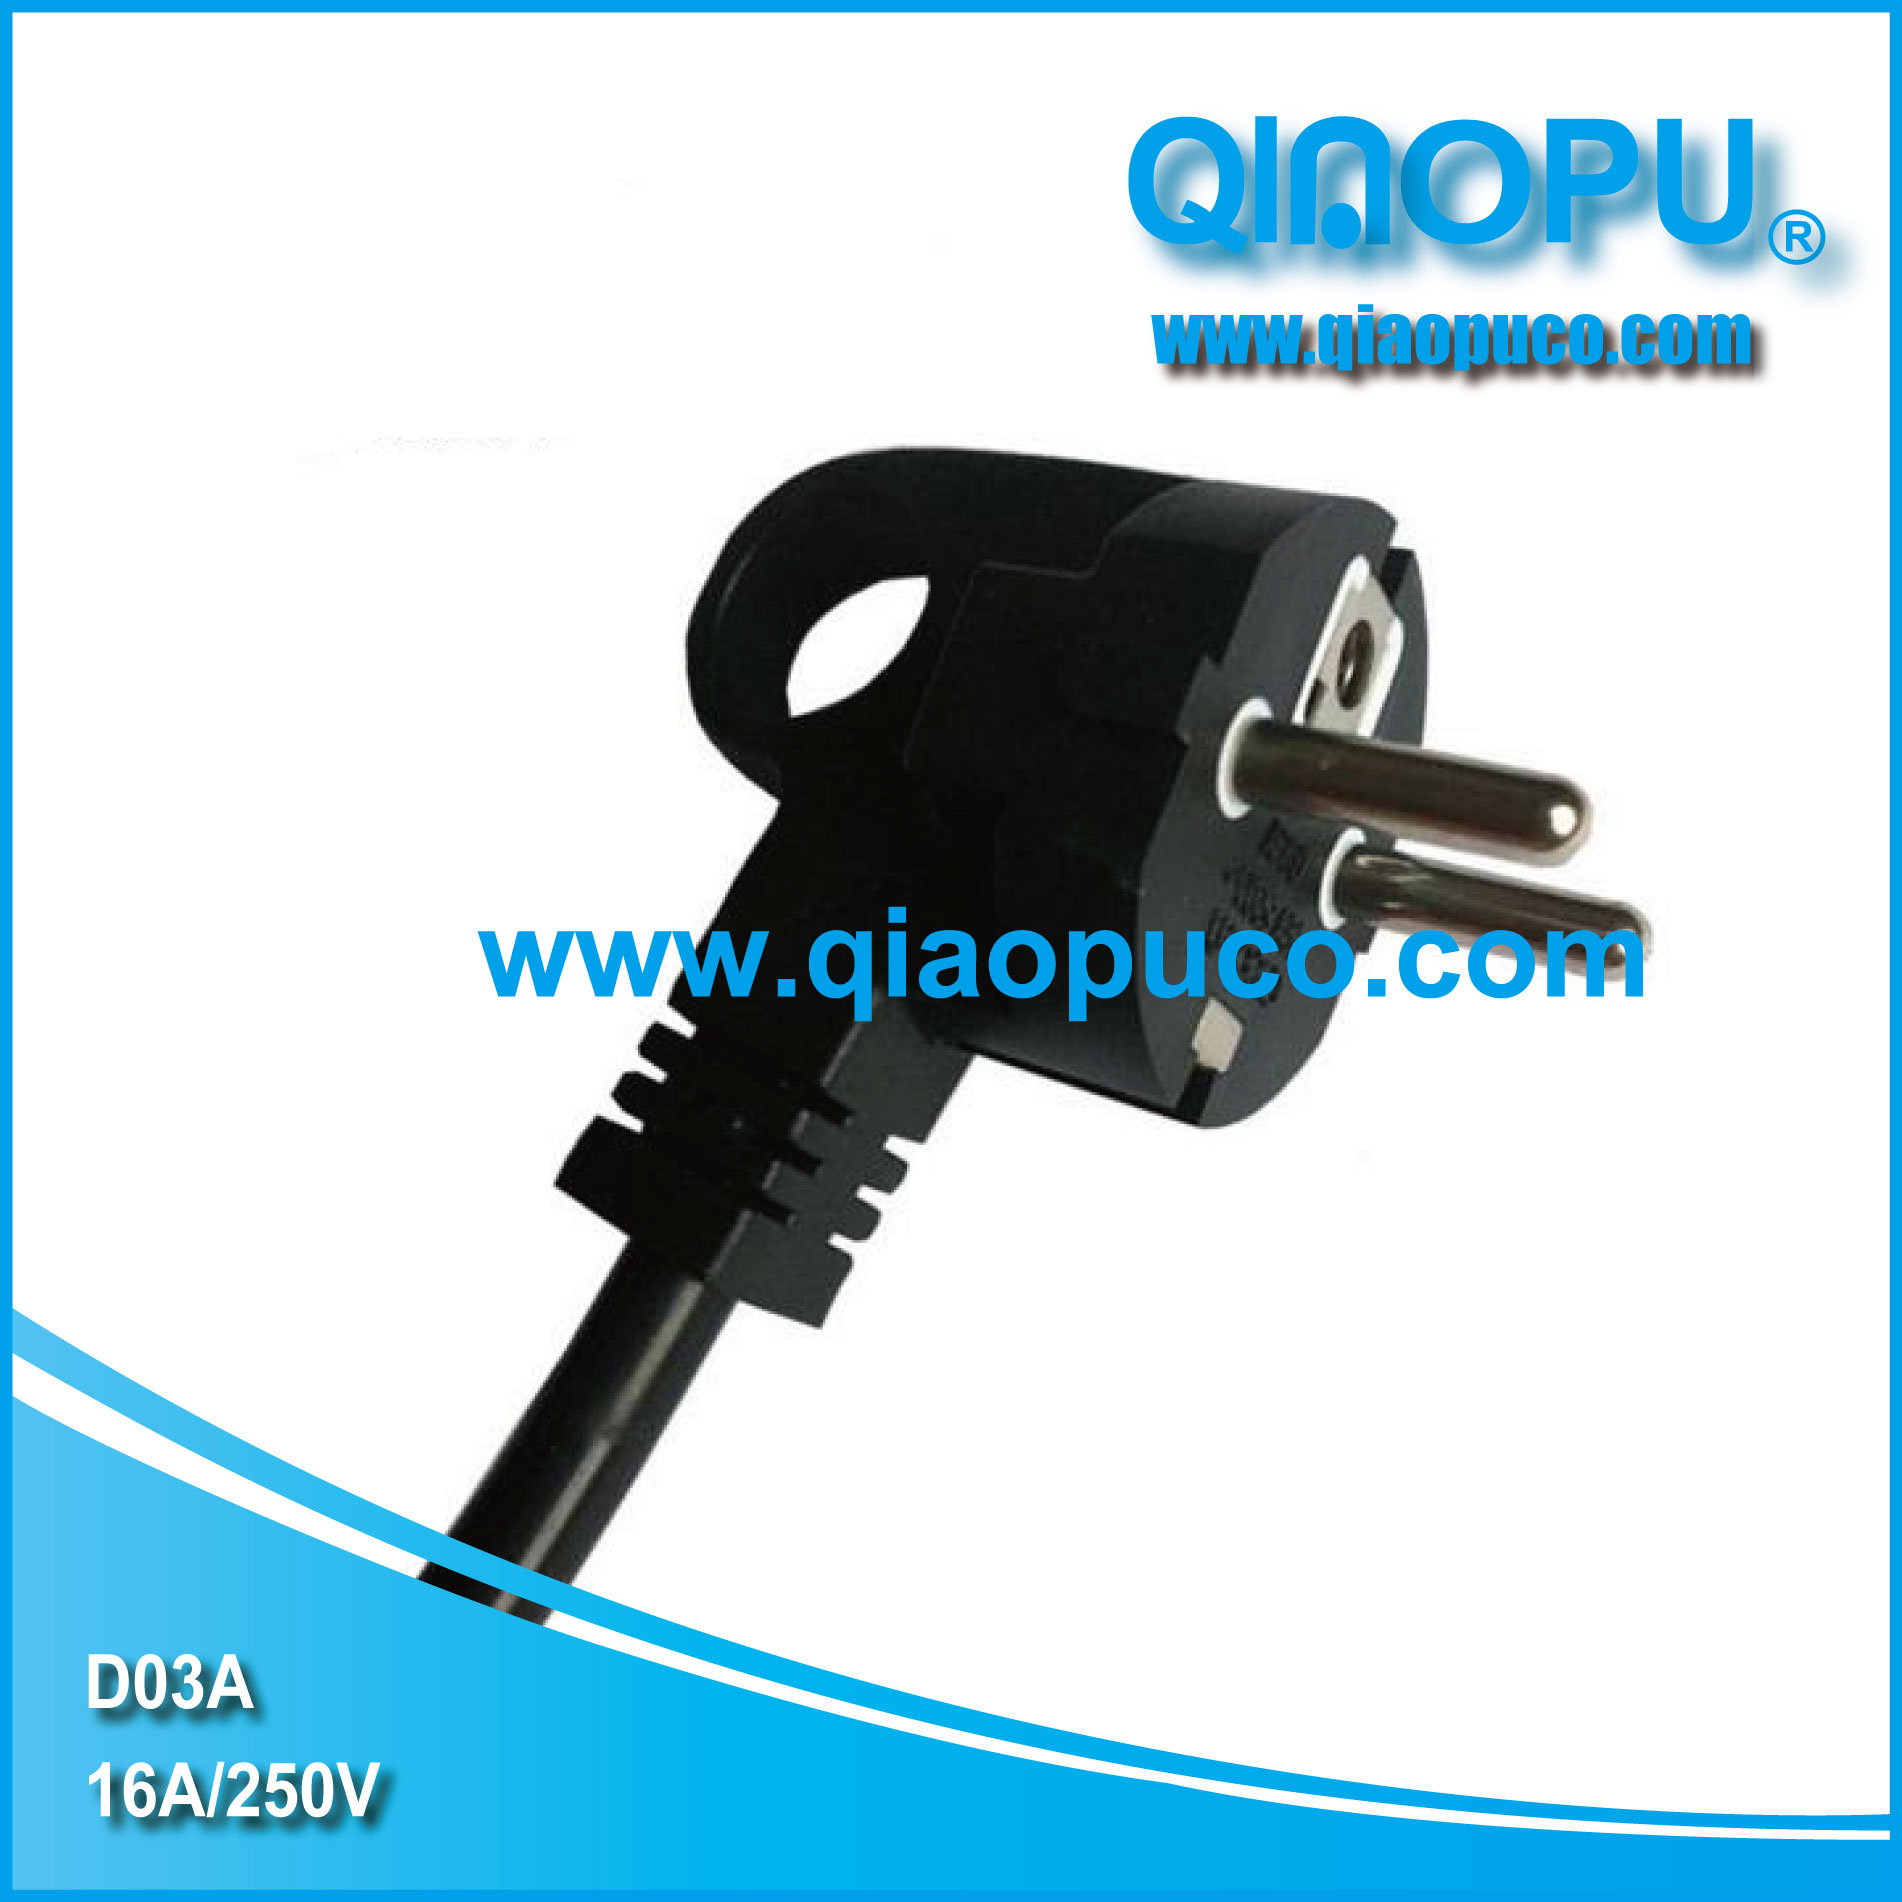 D03a eu regulation with the pull ring plug power cordvde d03a eu regulation with the pull ring plug power cord xflitez Choice Image